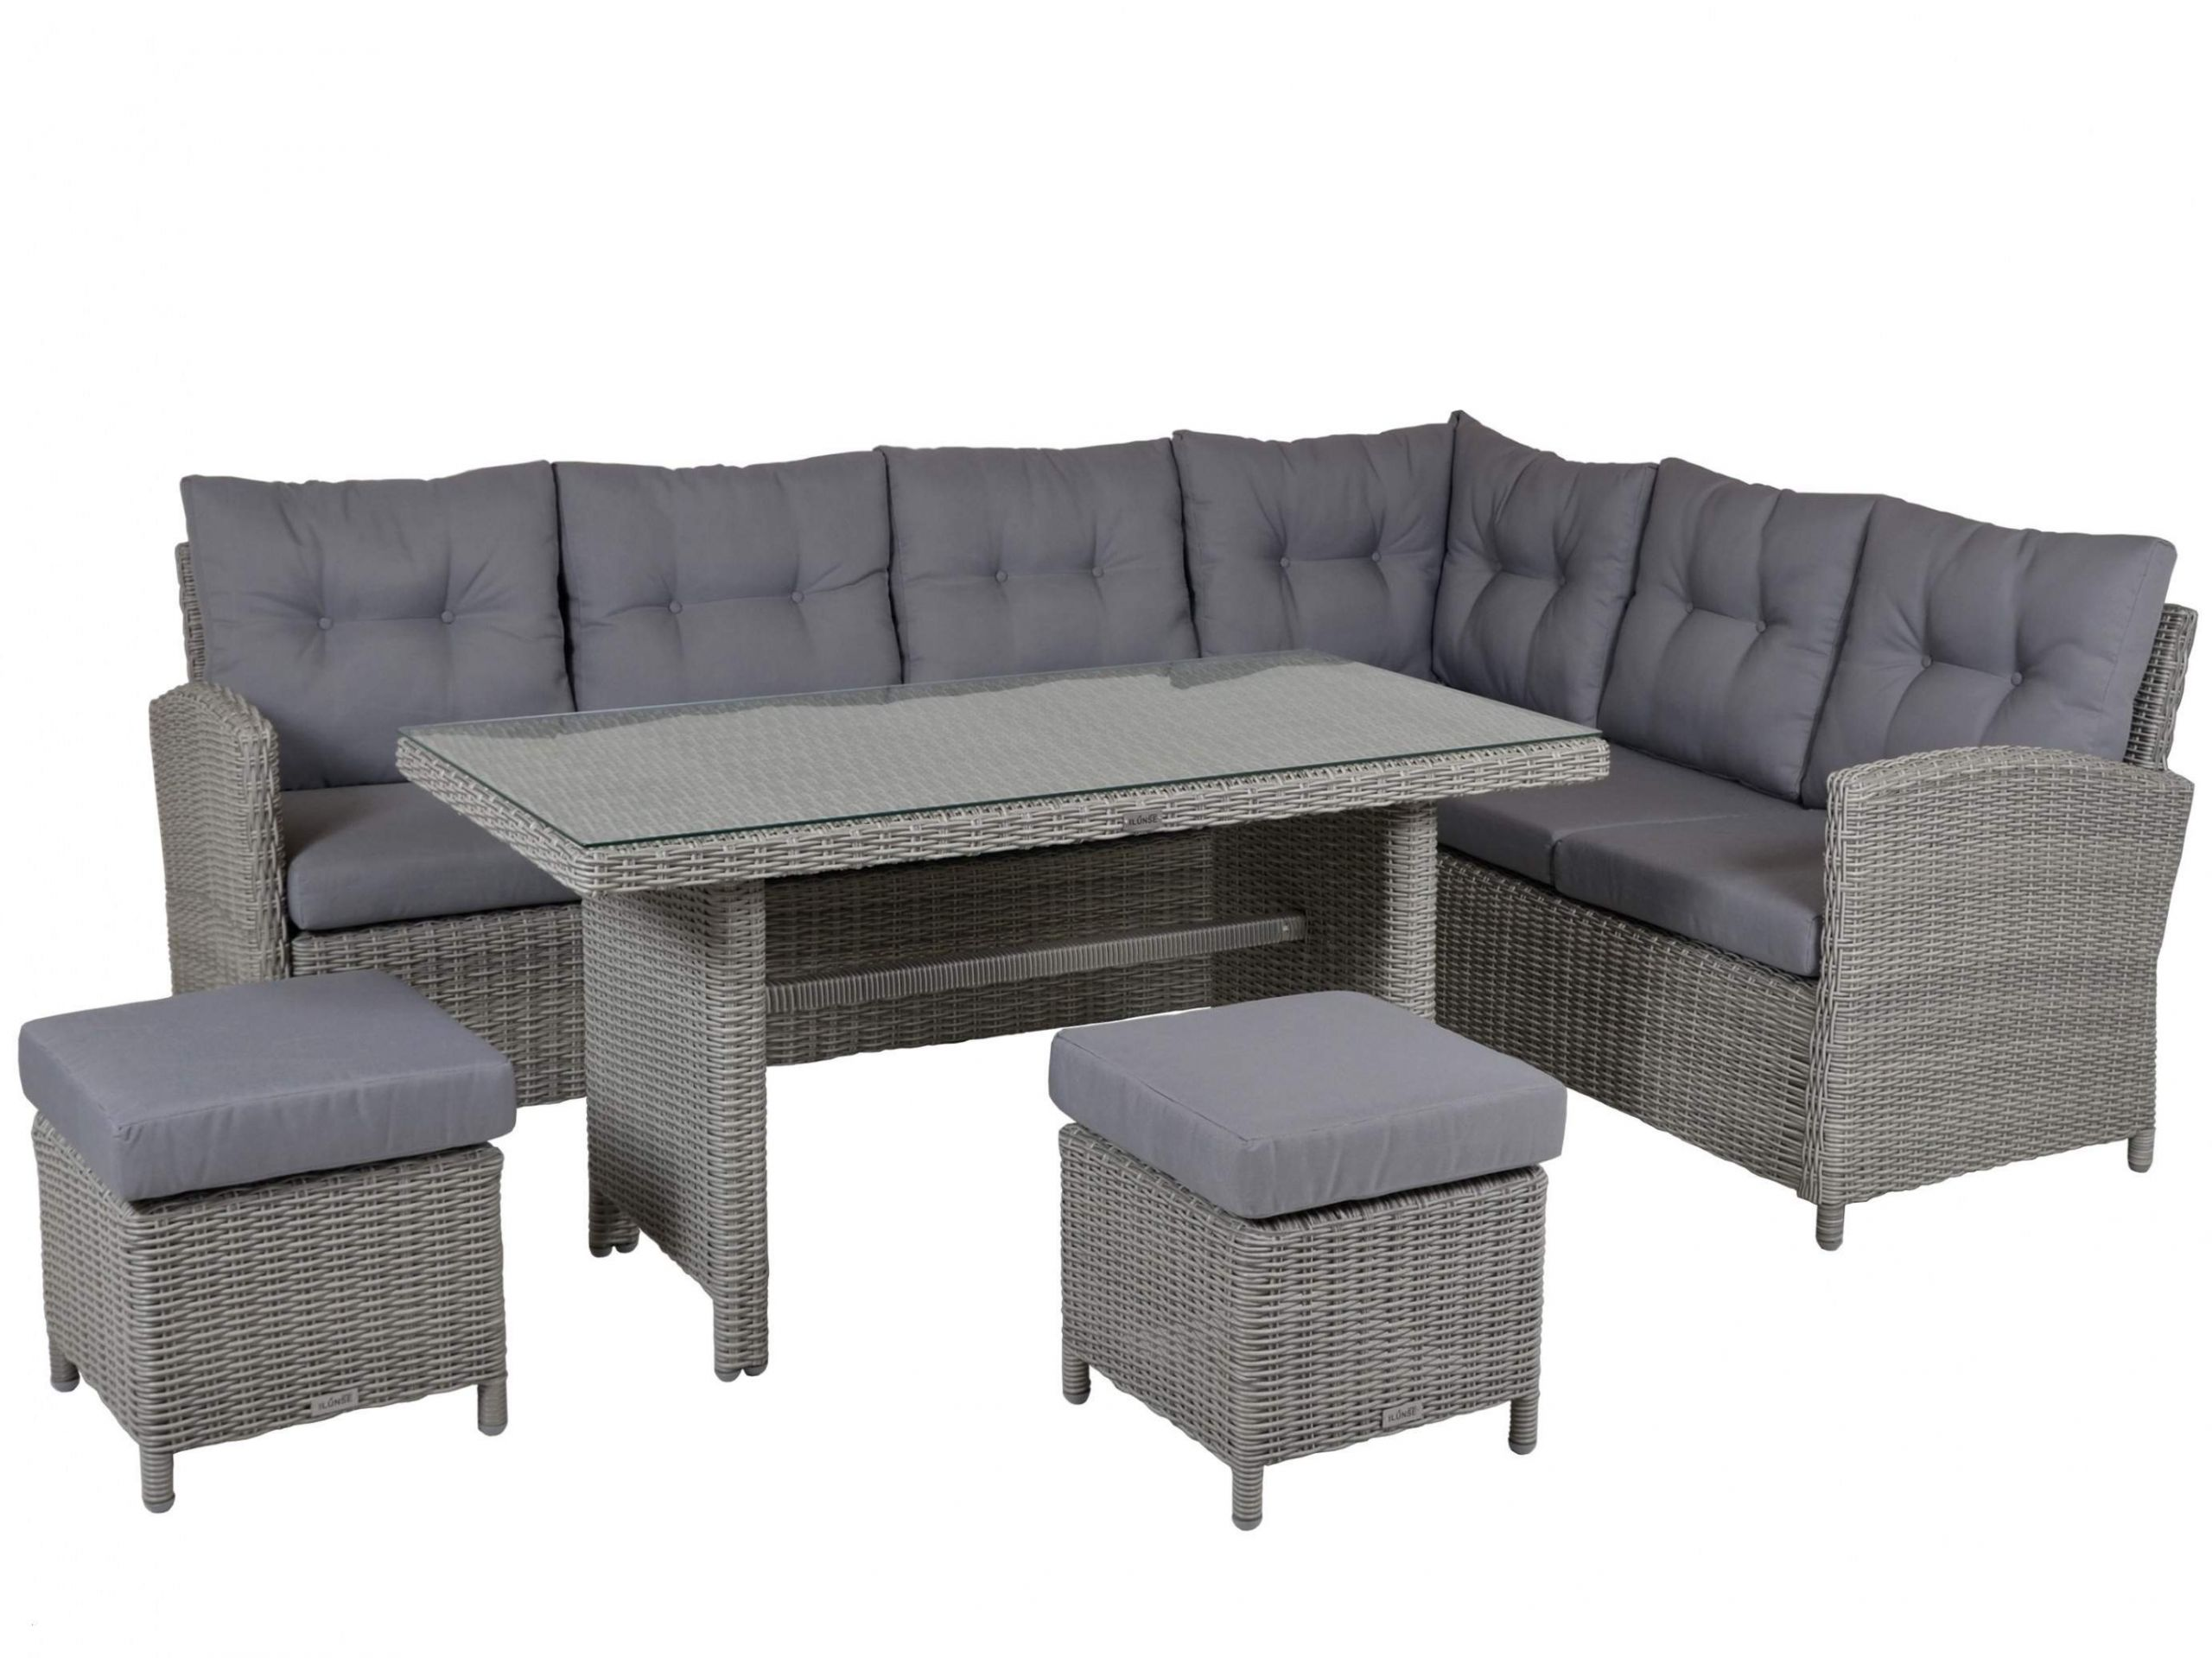 garten lounge set elegant loungemobel garten grau garten lounge set rattan of garten lounge set scaled